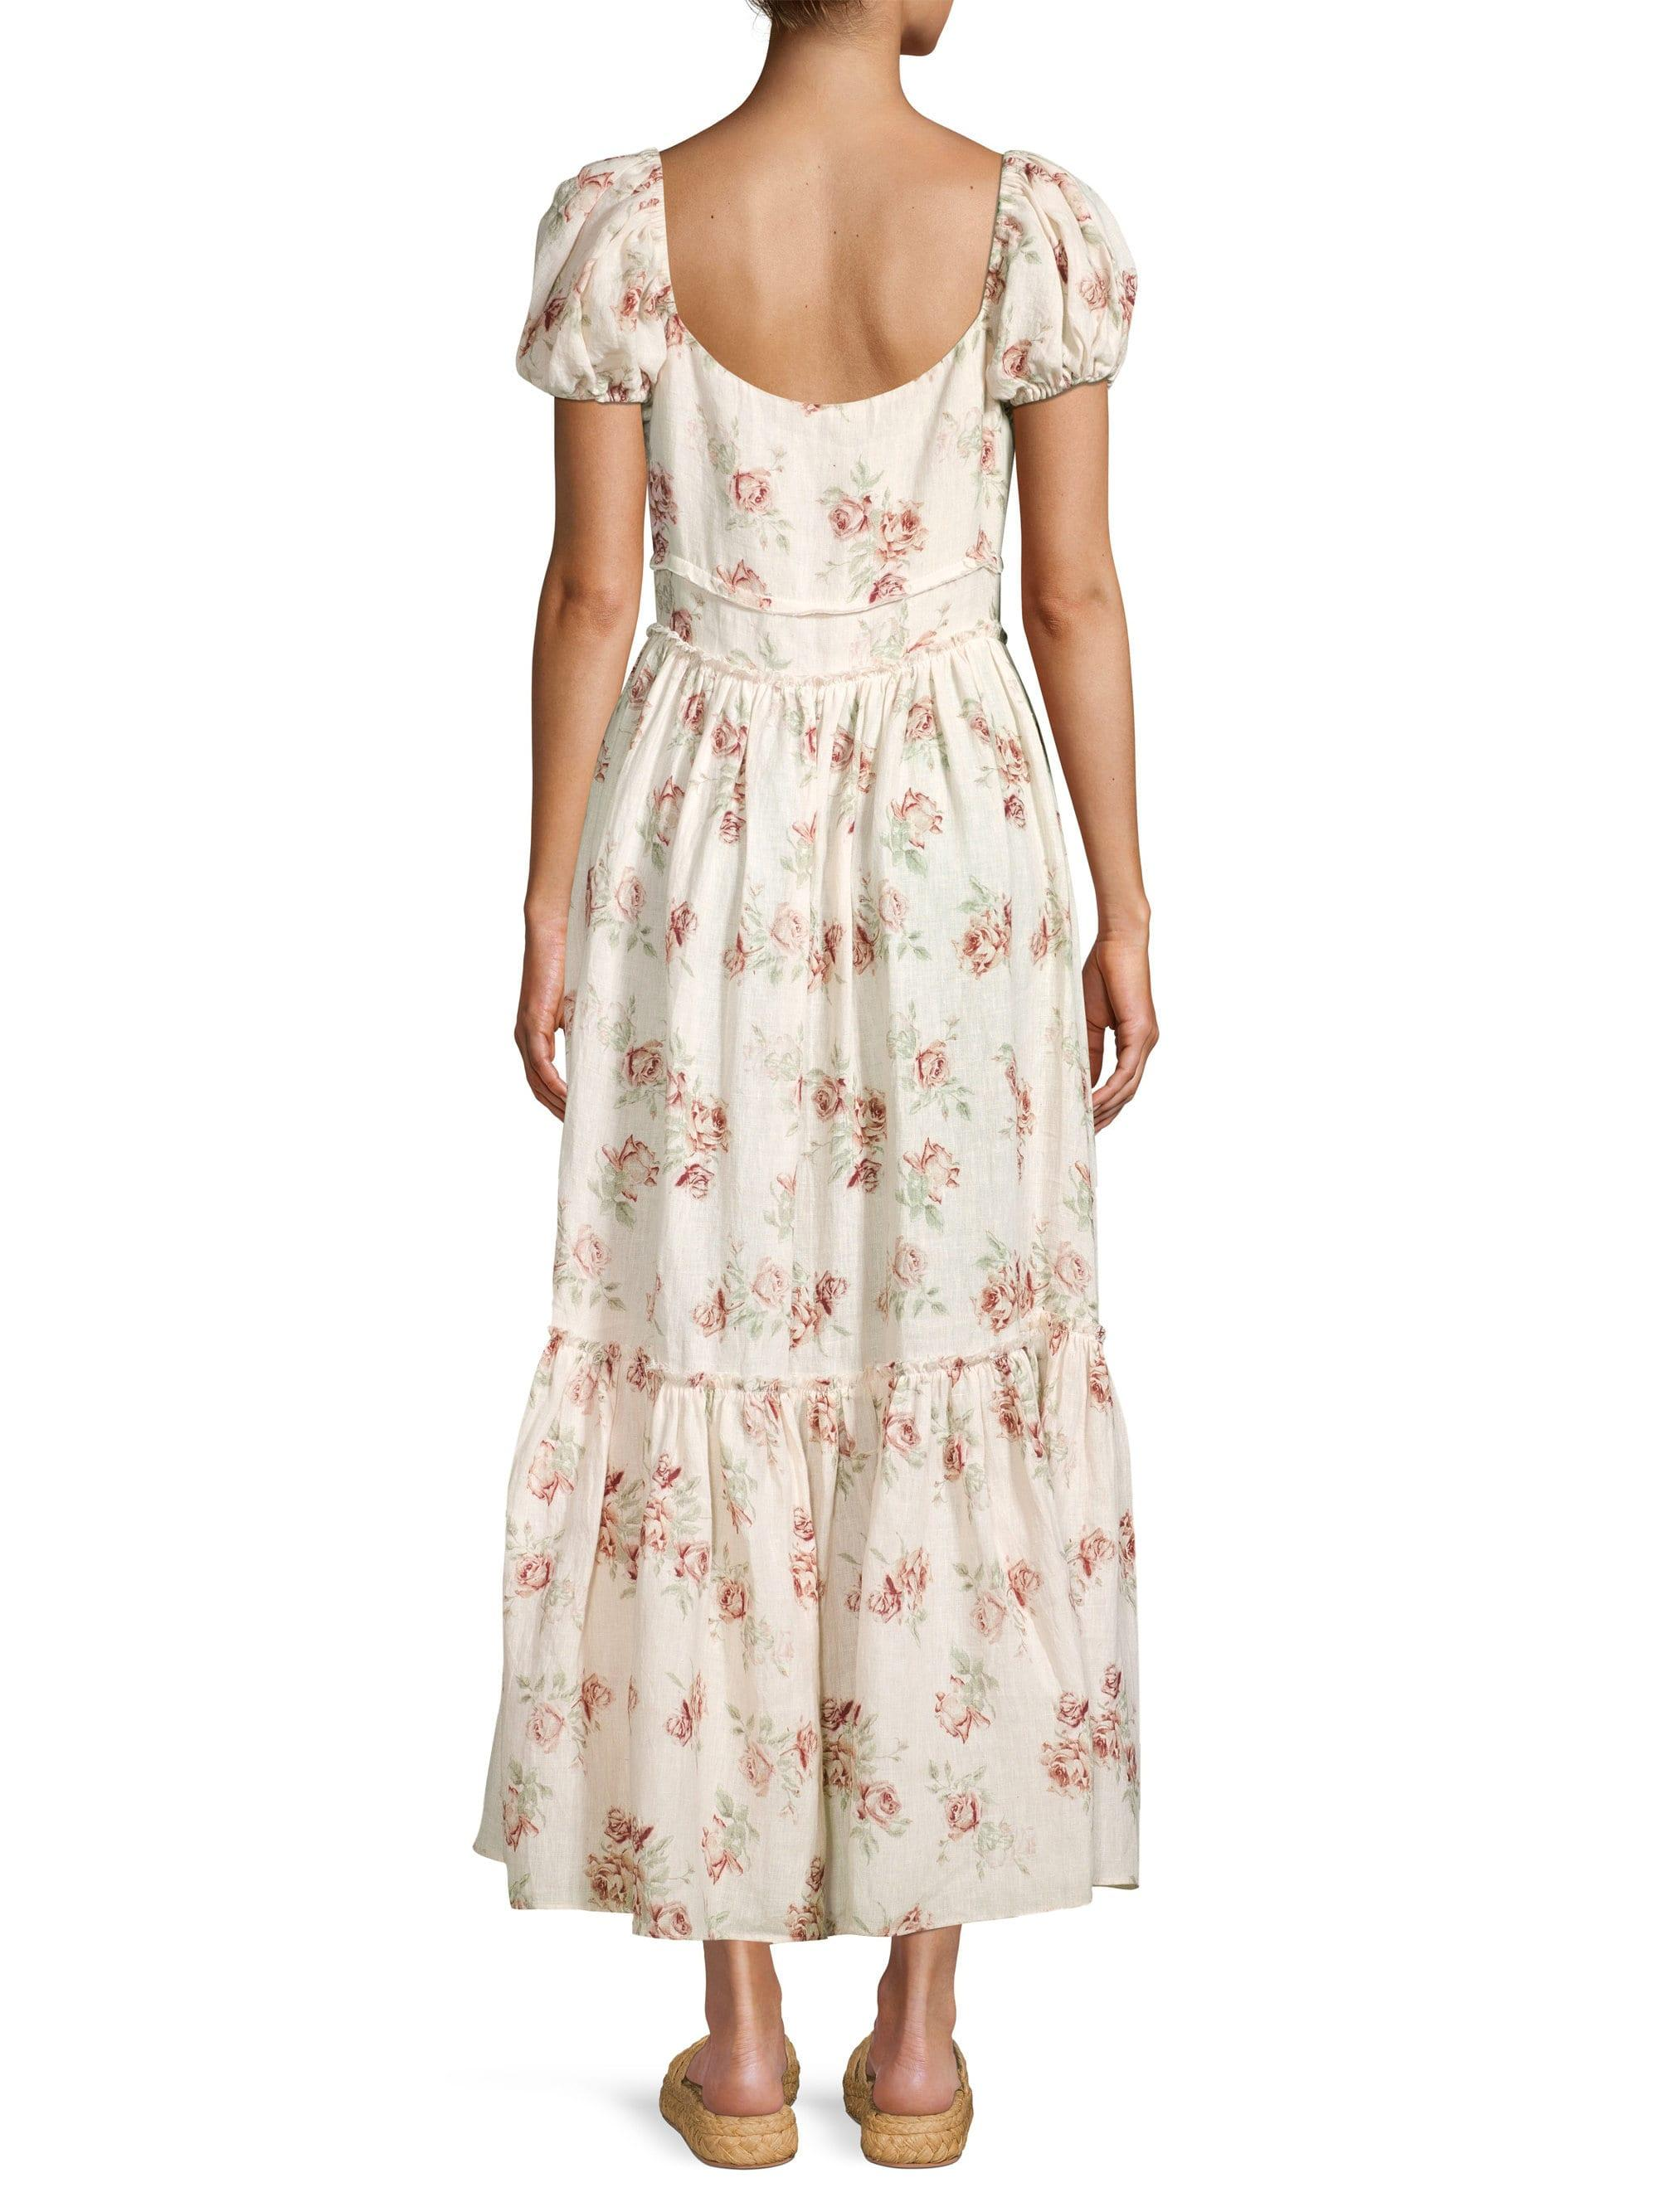 5018bb929b8 Lyst - LoveShackFancy Women s Angie Cotton Floral Maxi Dress - Dream - Size  0 in Natural